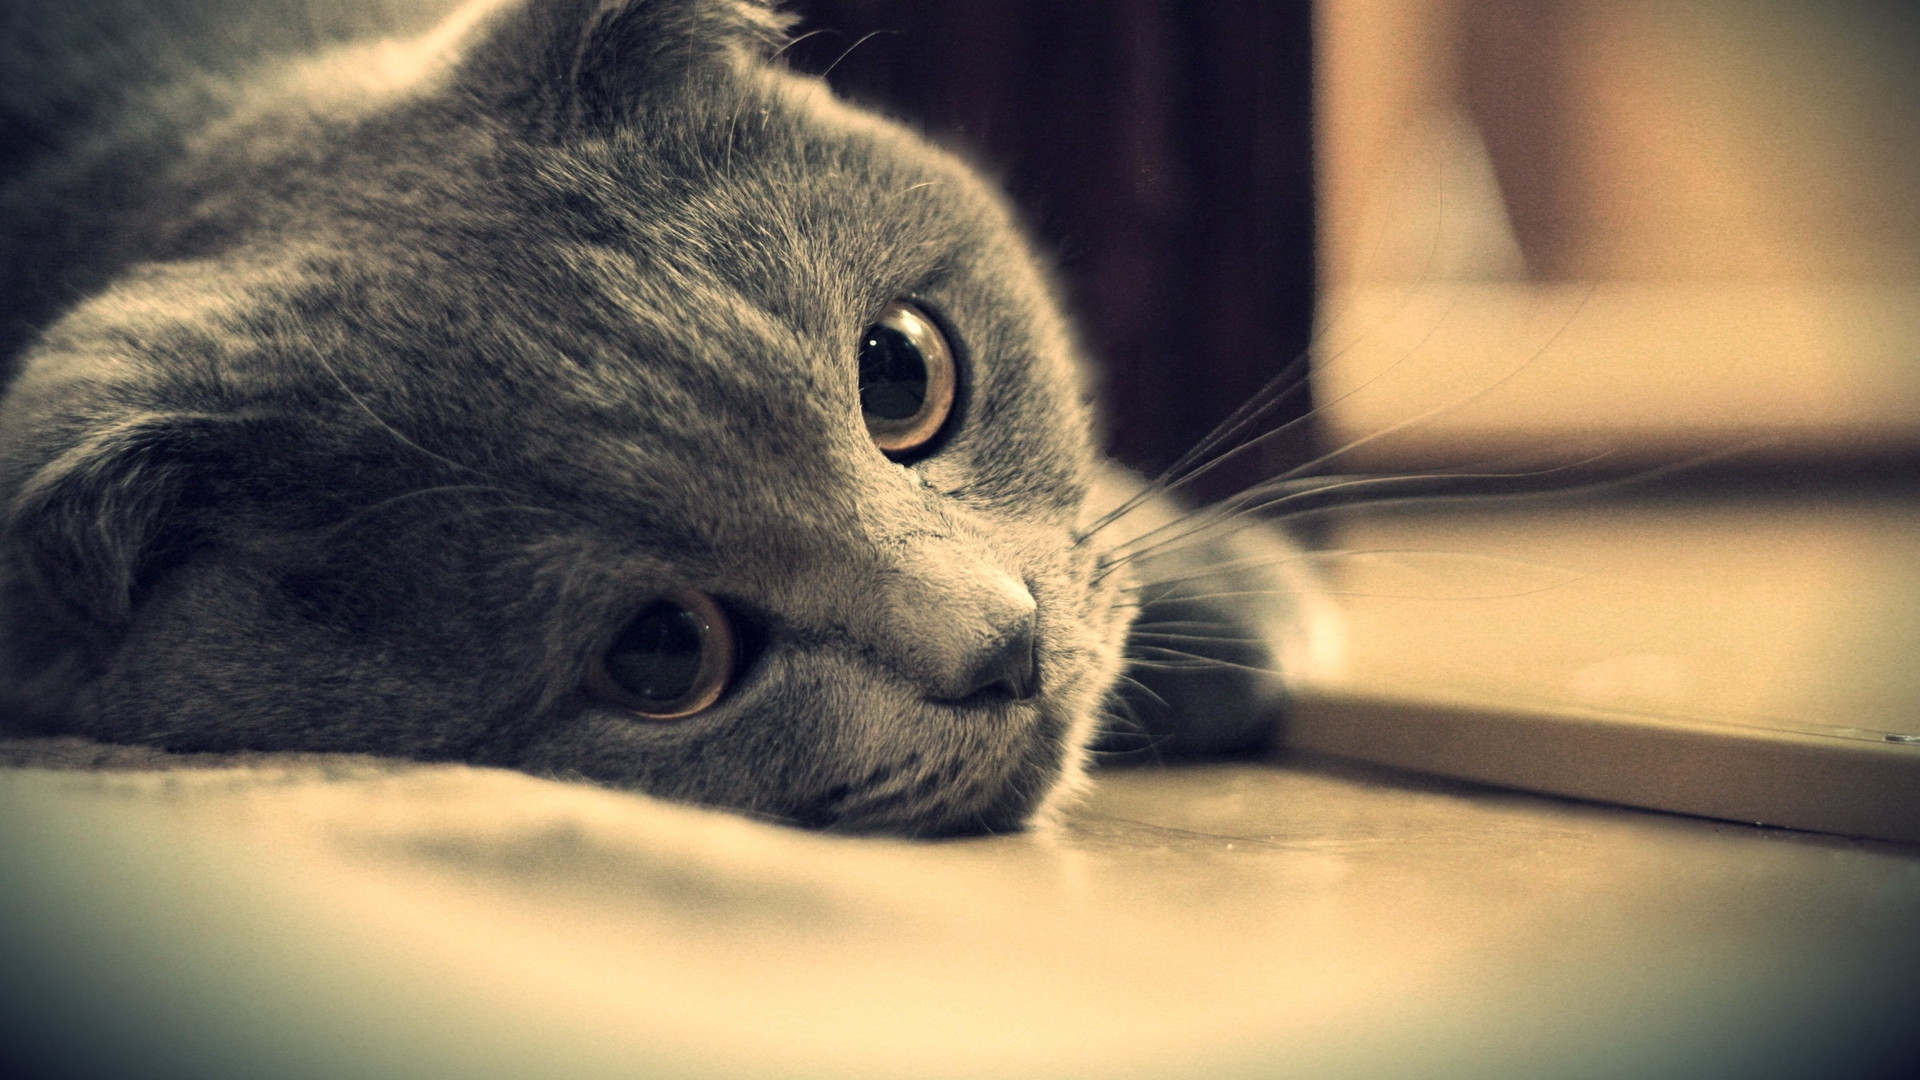 cute kitten wallpapers pictures hd 4